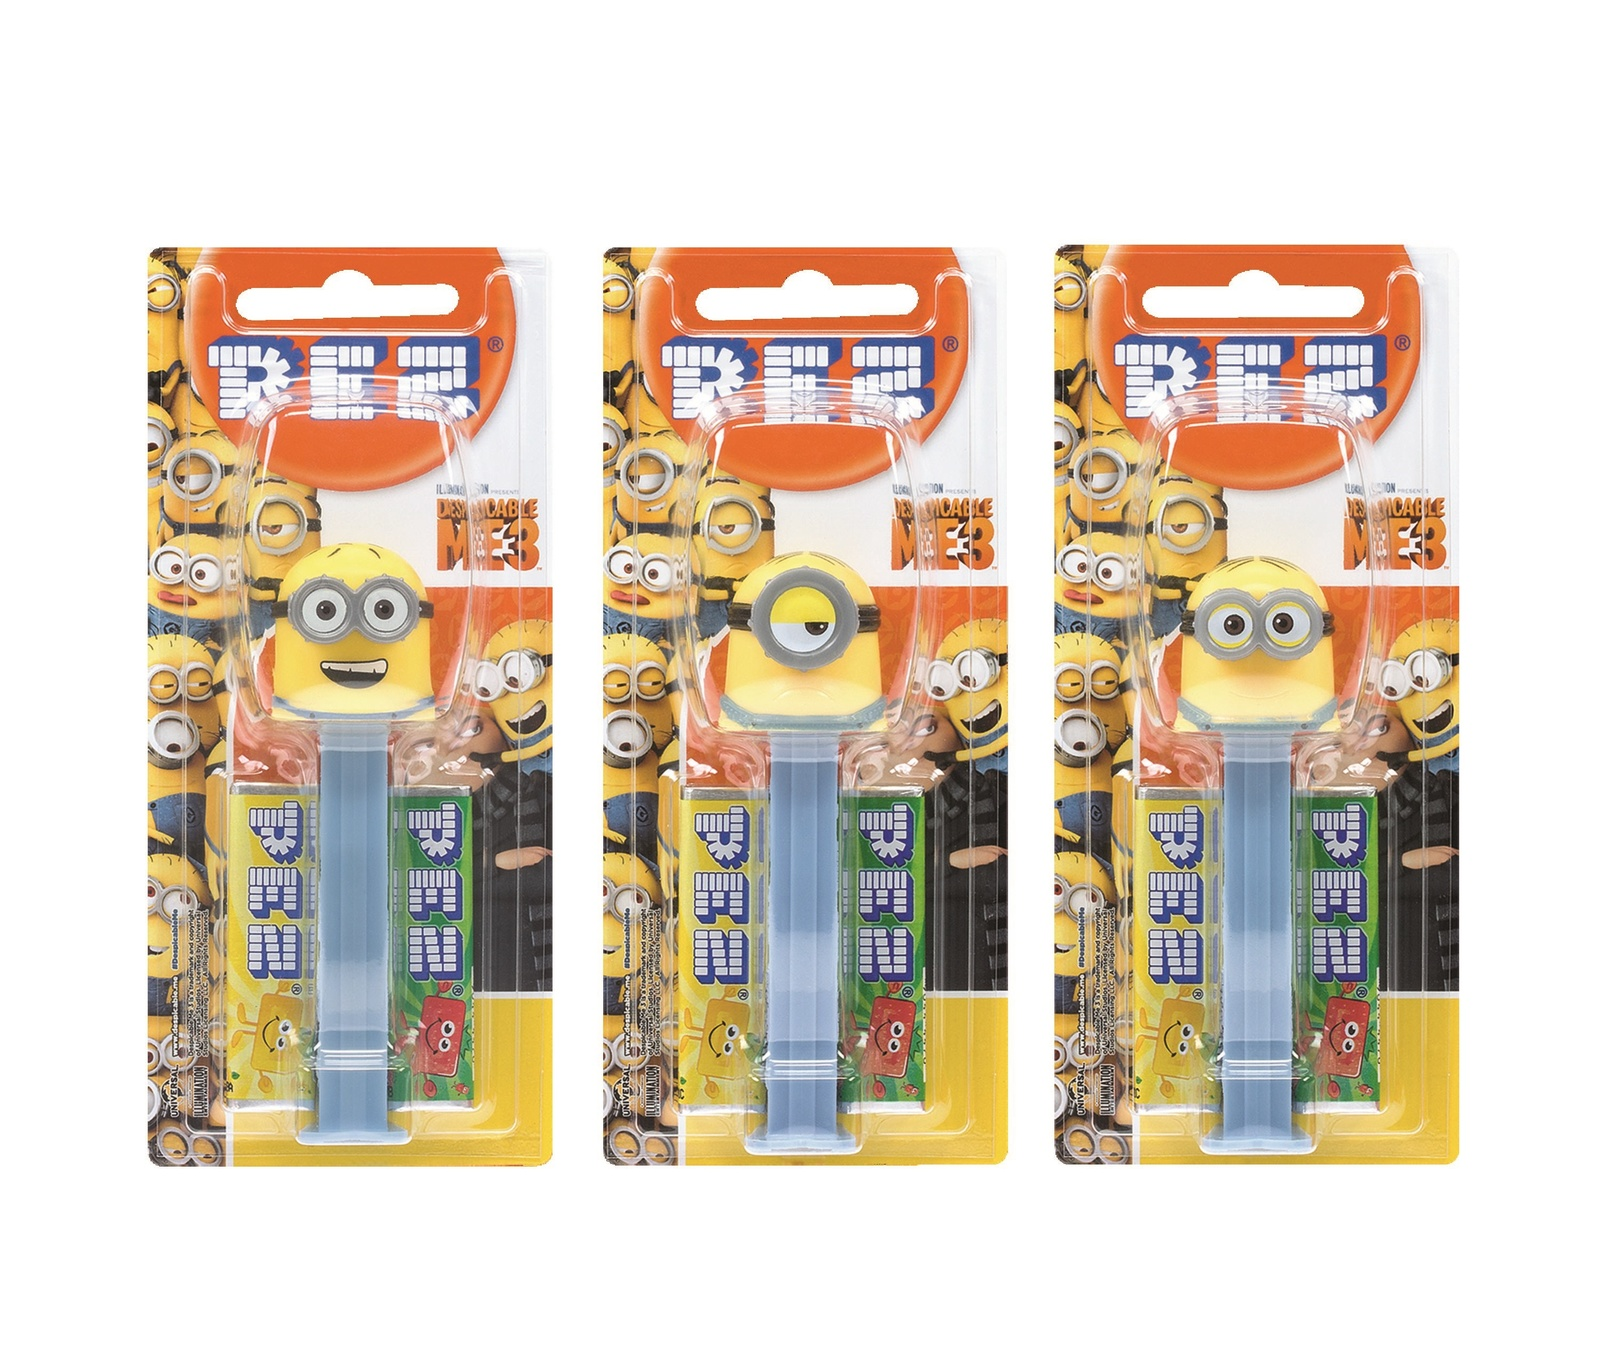 PEZ: Despicable Me 3 Candy Dispenser - 17g (Assorted) image